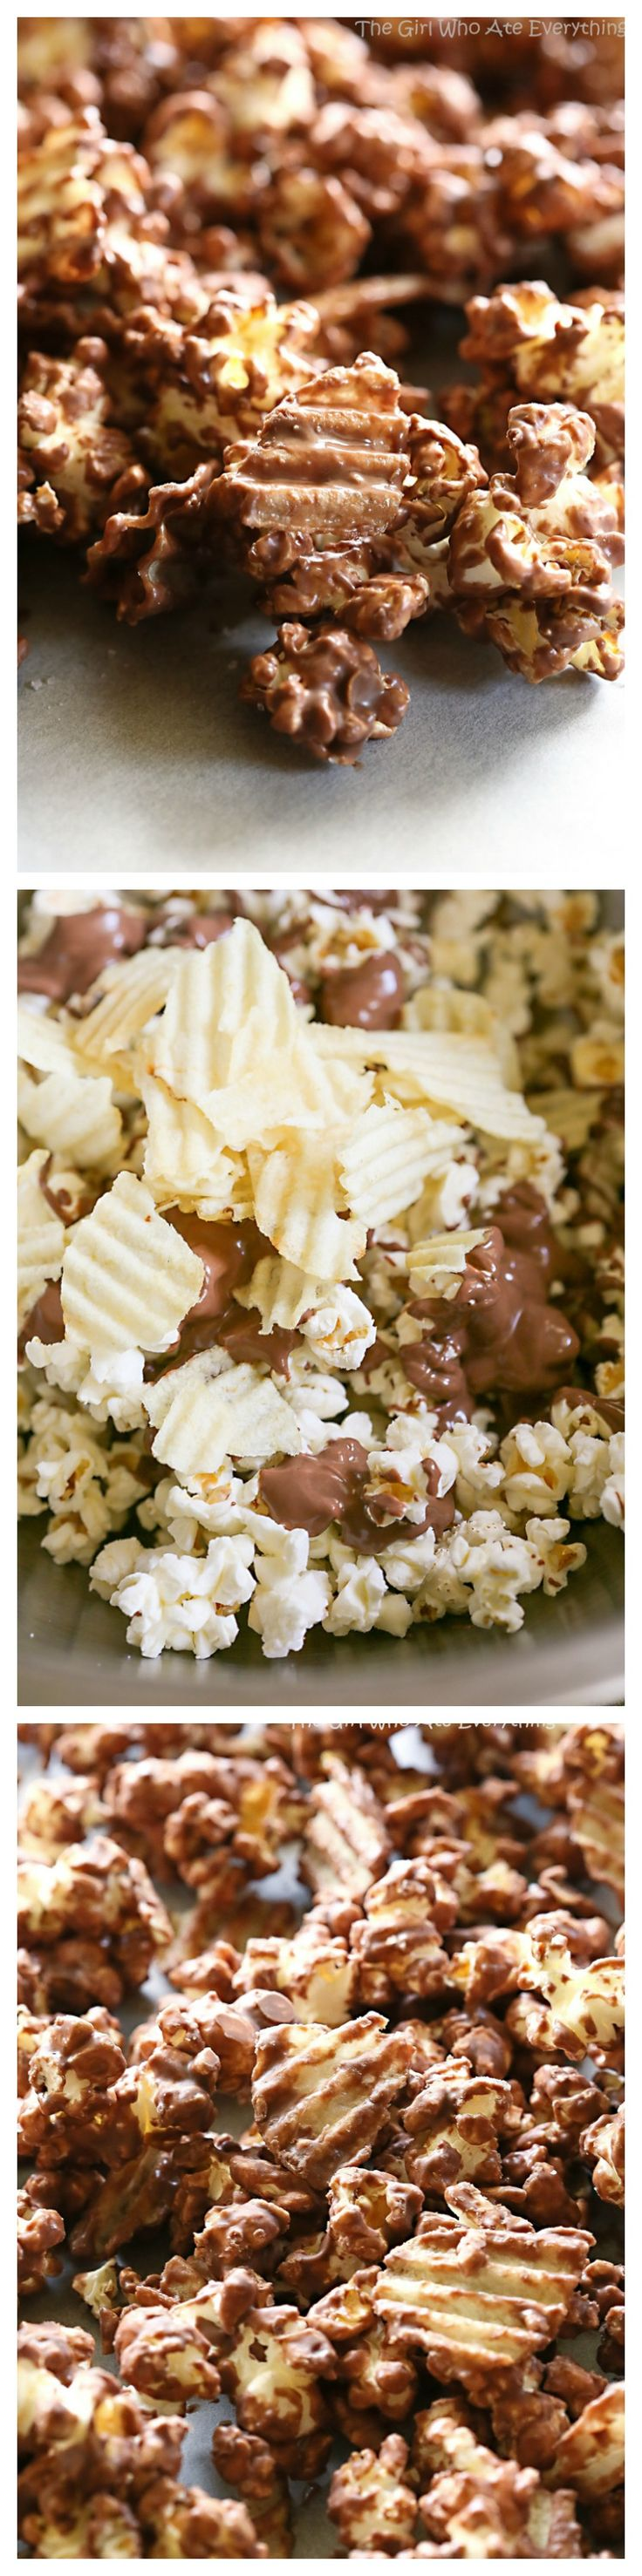 This Chocolate-covered Potato Chip Popcorn is a sweet and salty treat that is so addicting. the-girl-who-ate-everything.com